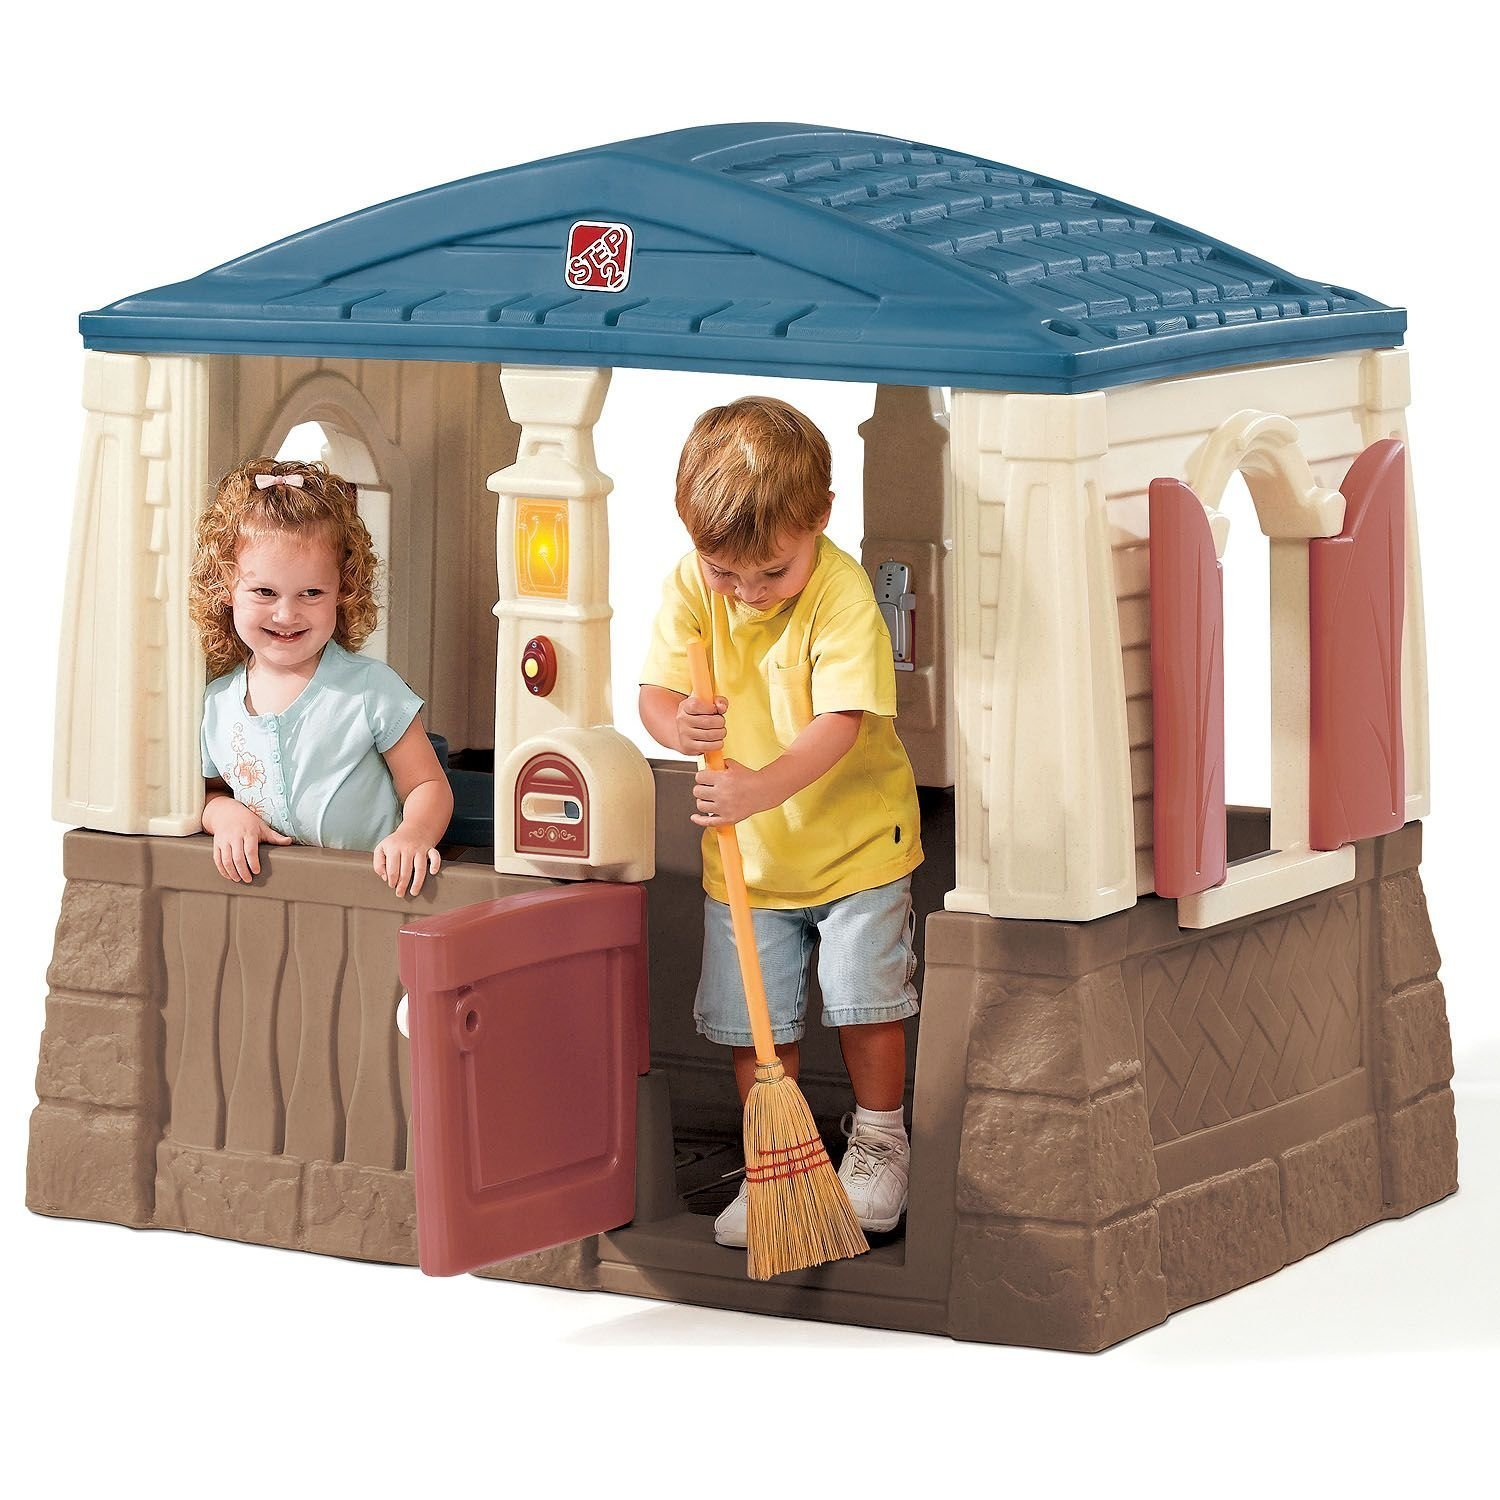 Kids Outdoor Playhouse Pretend Play Fun